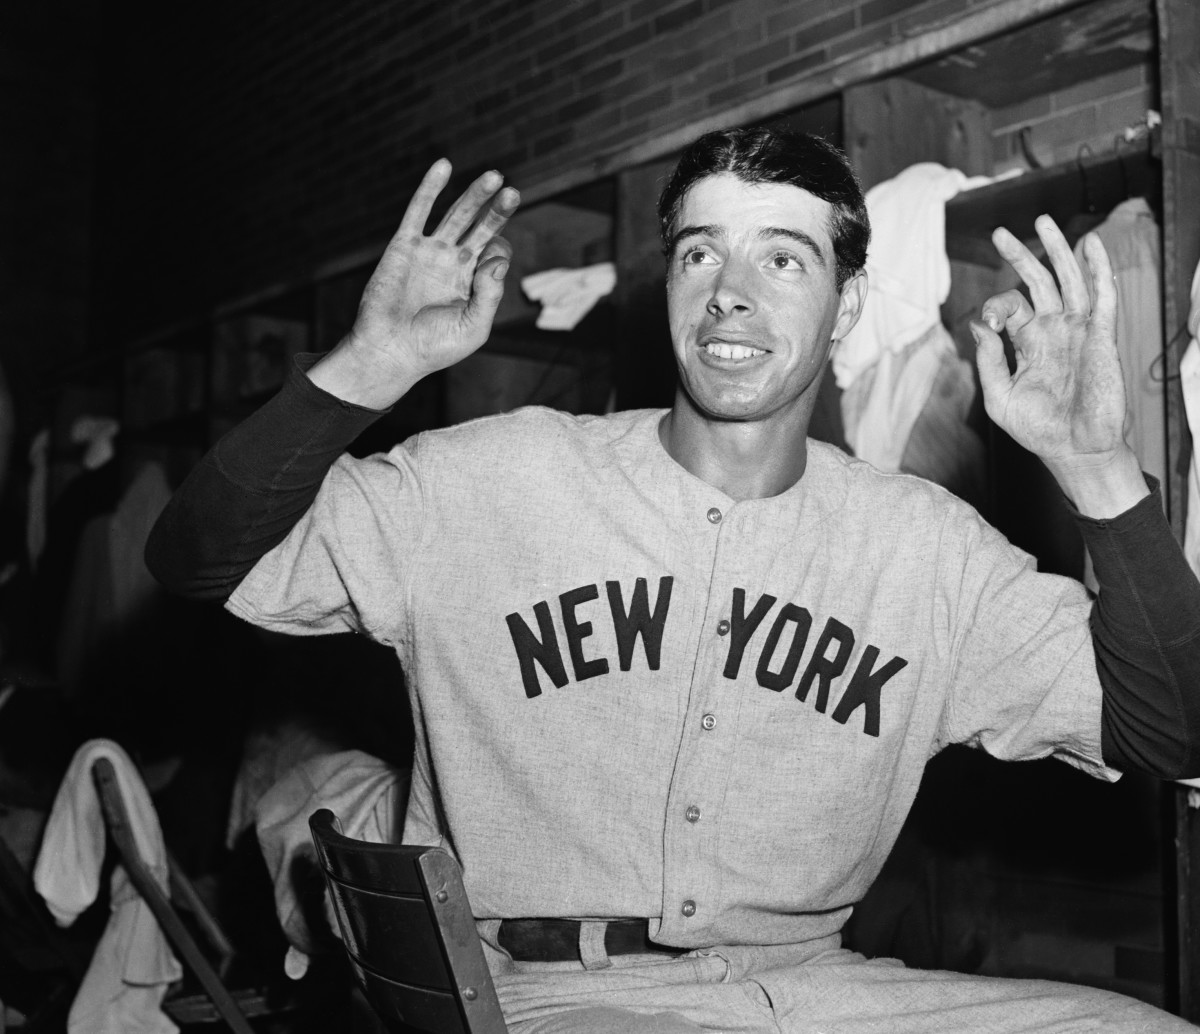 Joe DiMaggio, shown during his 56-game hitting streak in 1941, was one of the game's most popular players.